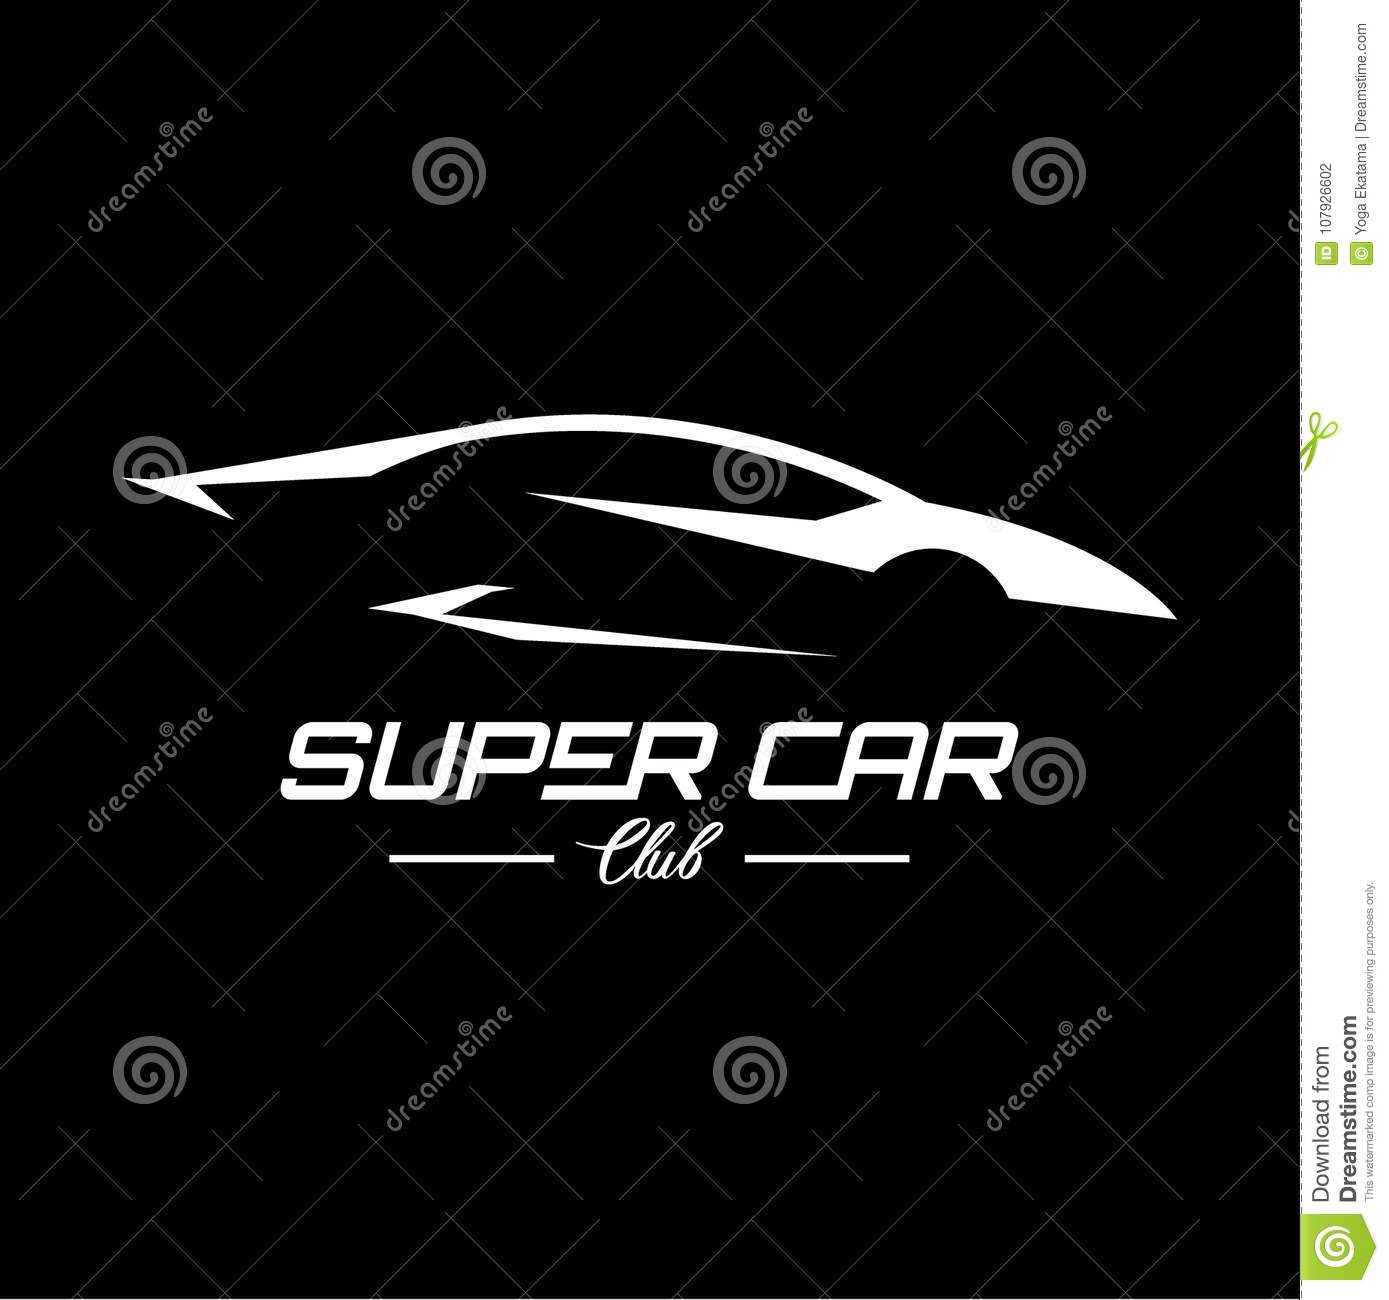 super car club logo